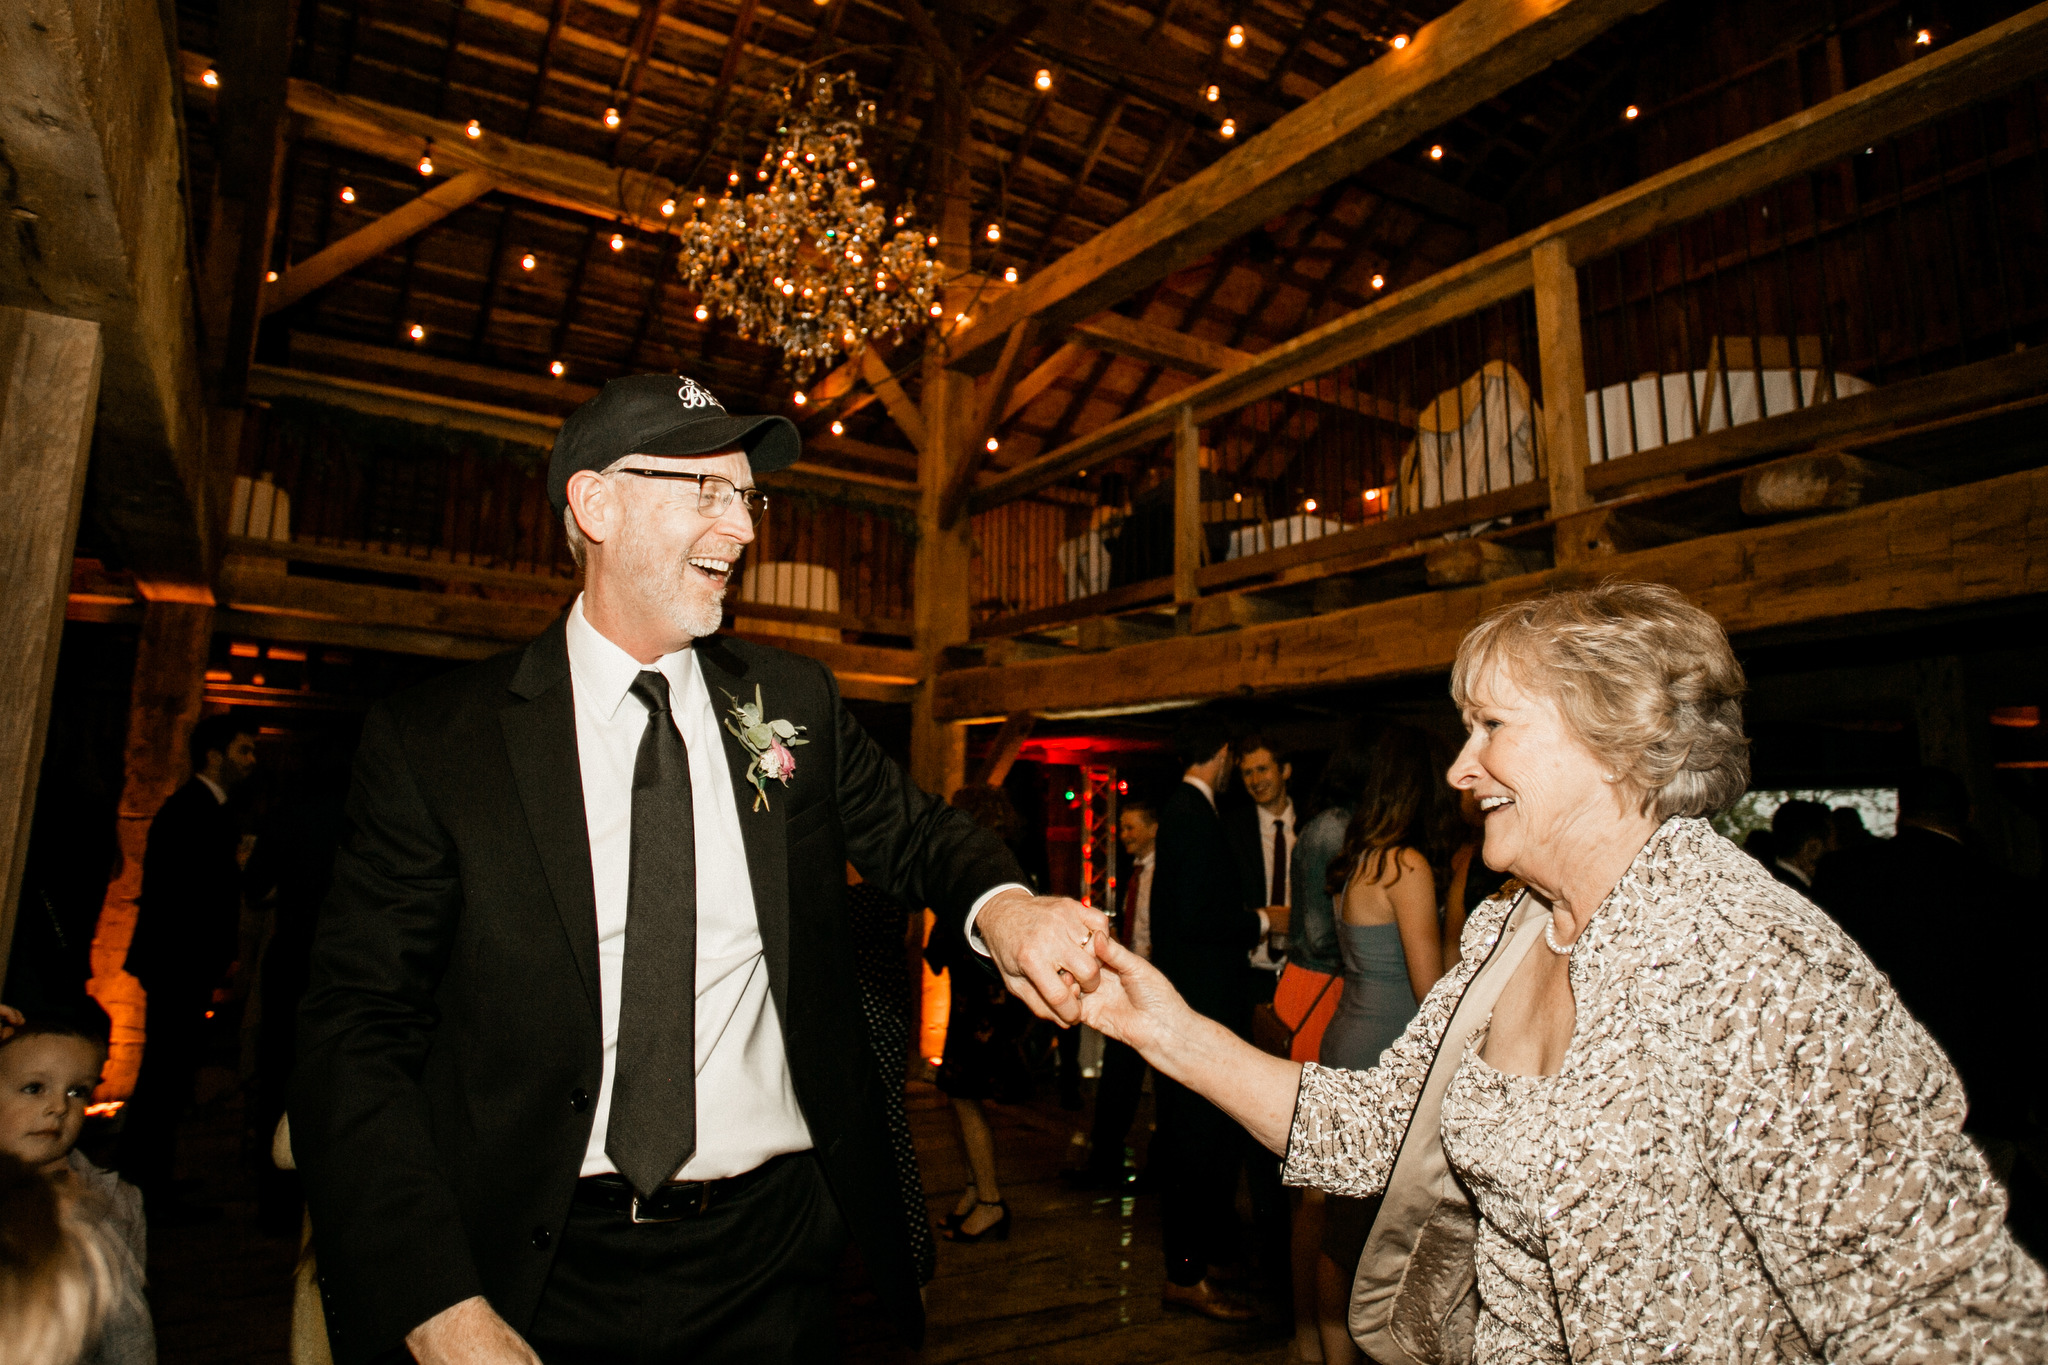 Vintage Oaks Banquet Barn Delphi Indiana Lafayette Purdue Wedding Photographer May Springtime Rustic Pictures